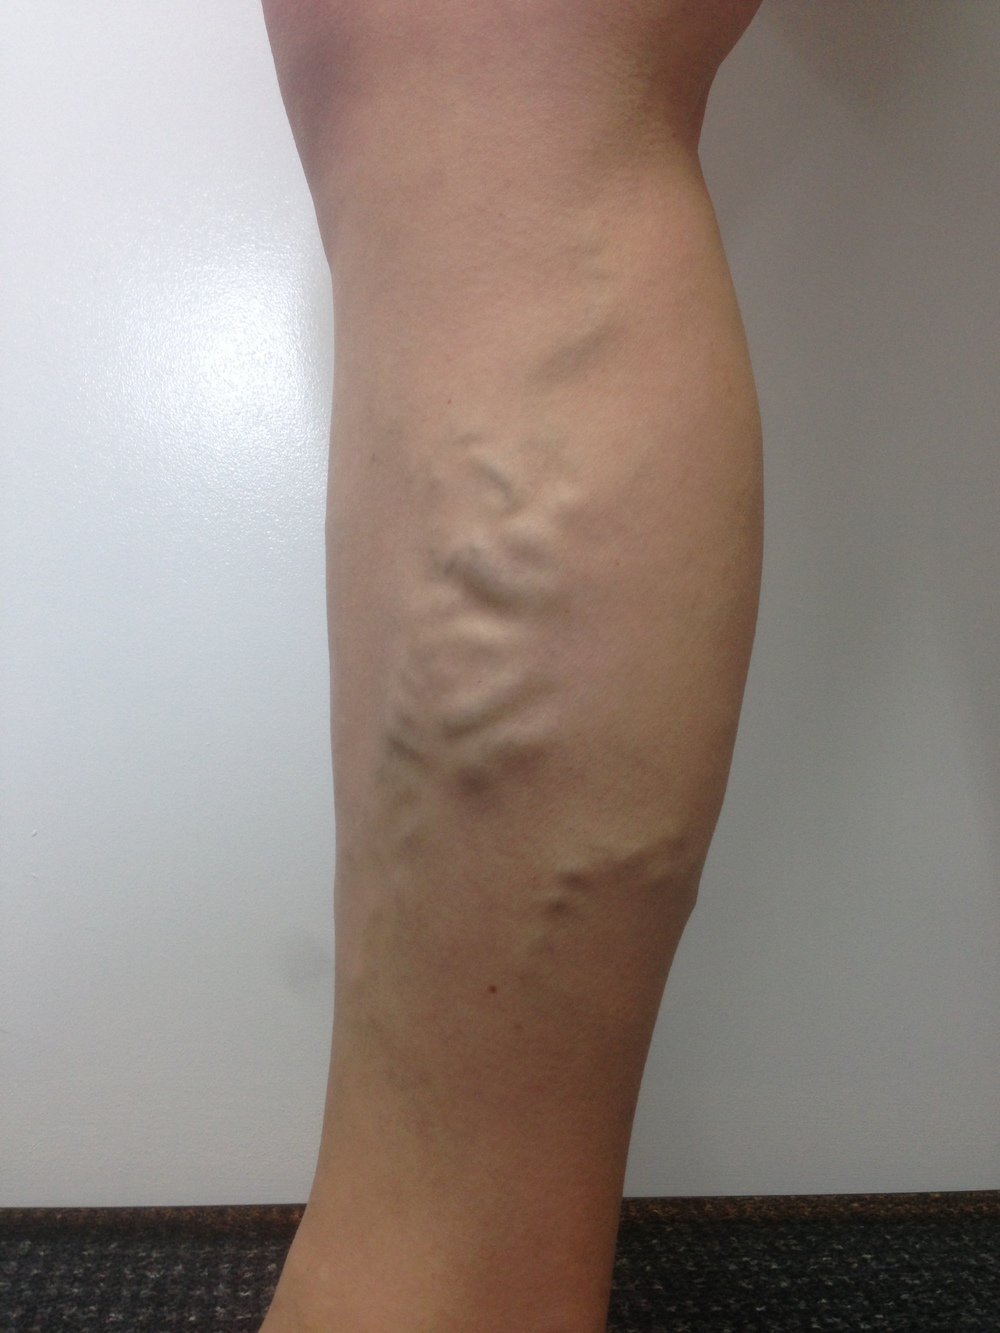 Patient presented with Varicose Veins. Female, 28 years.